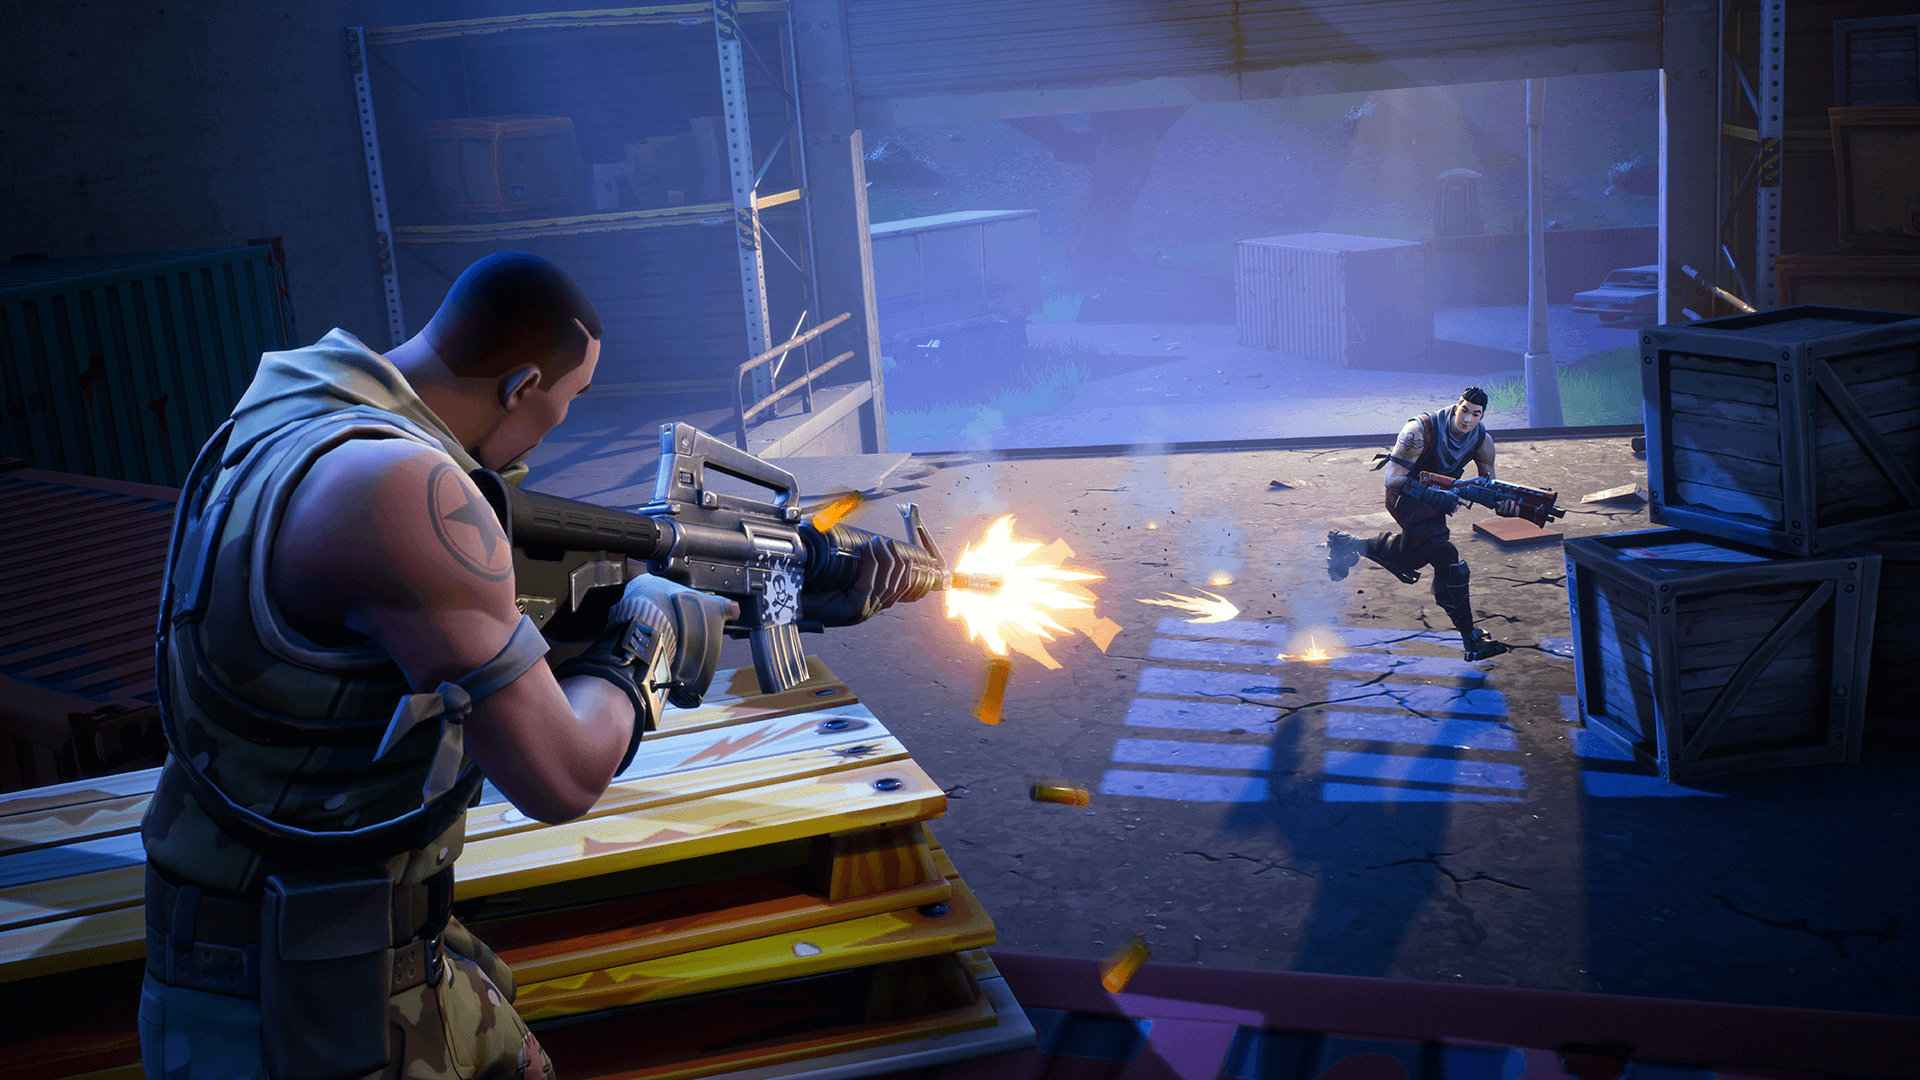 Fortnite Season 7 Teaser Reveals An Icy Theme, Hints At ...